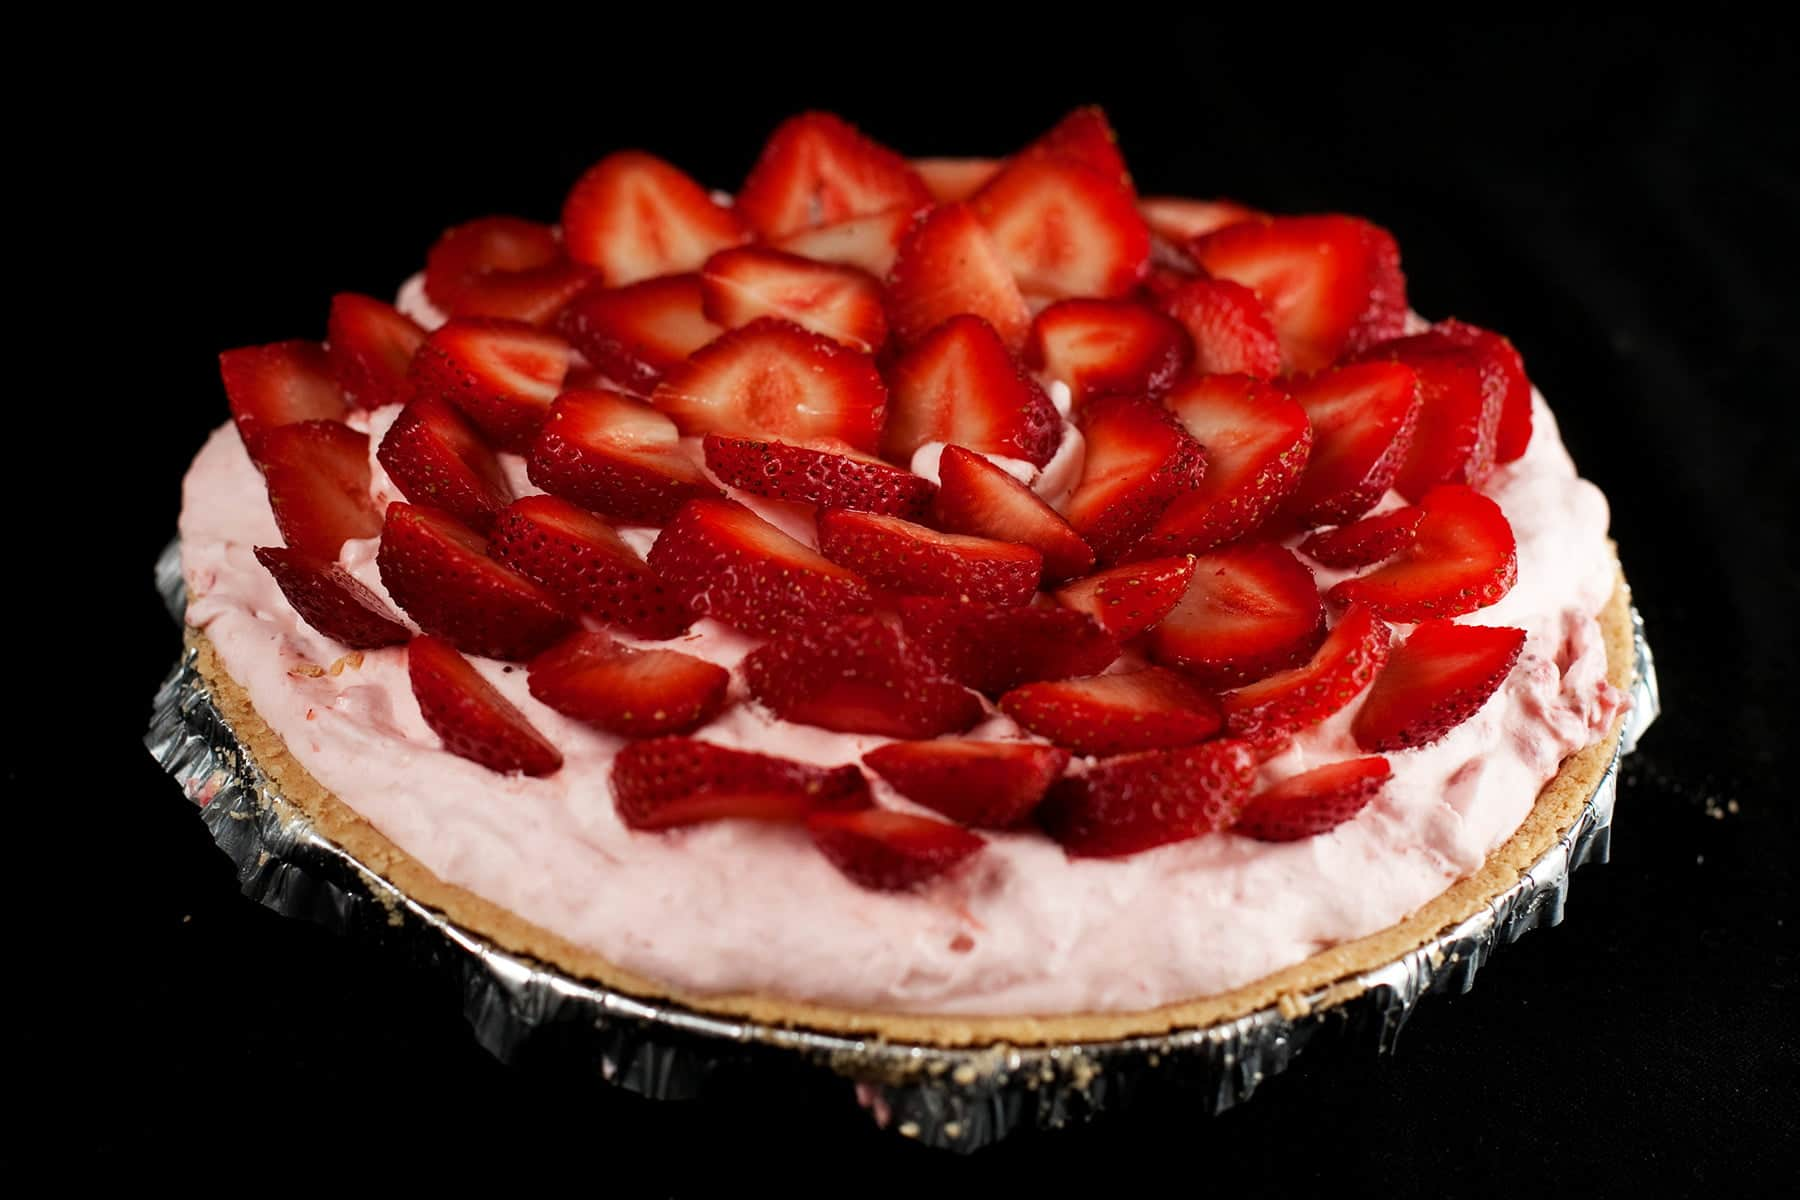 A pink coloured chiffon pie, covered with strawberries.